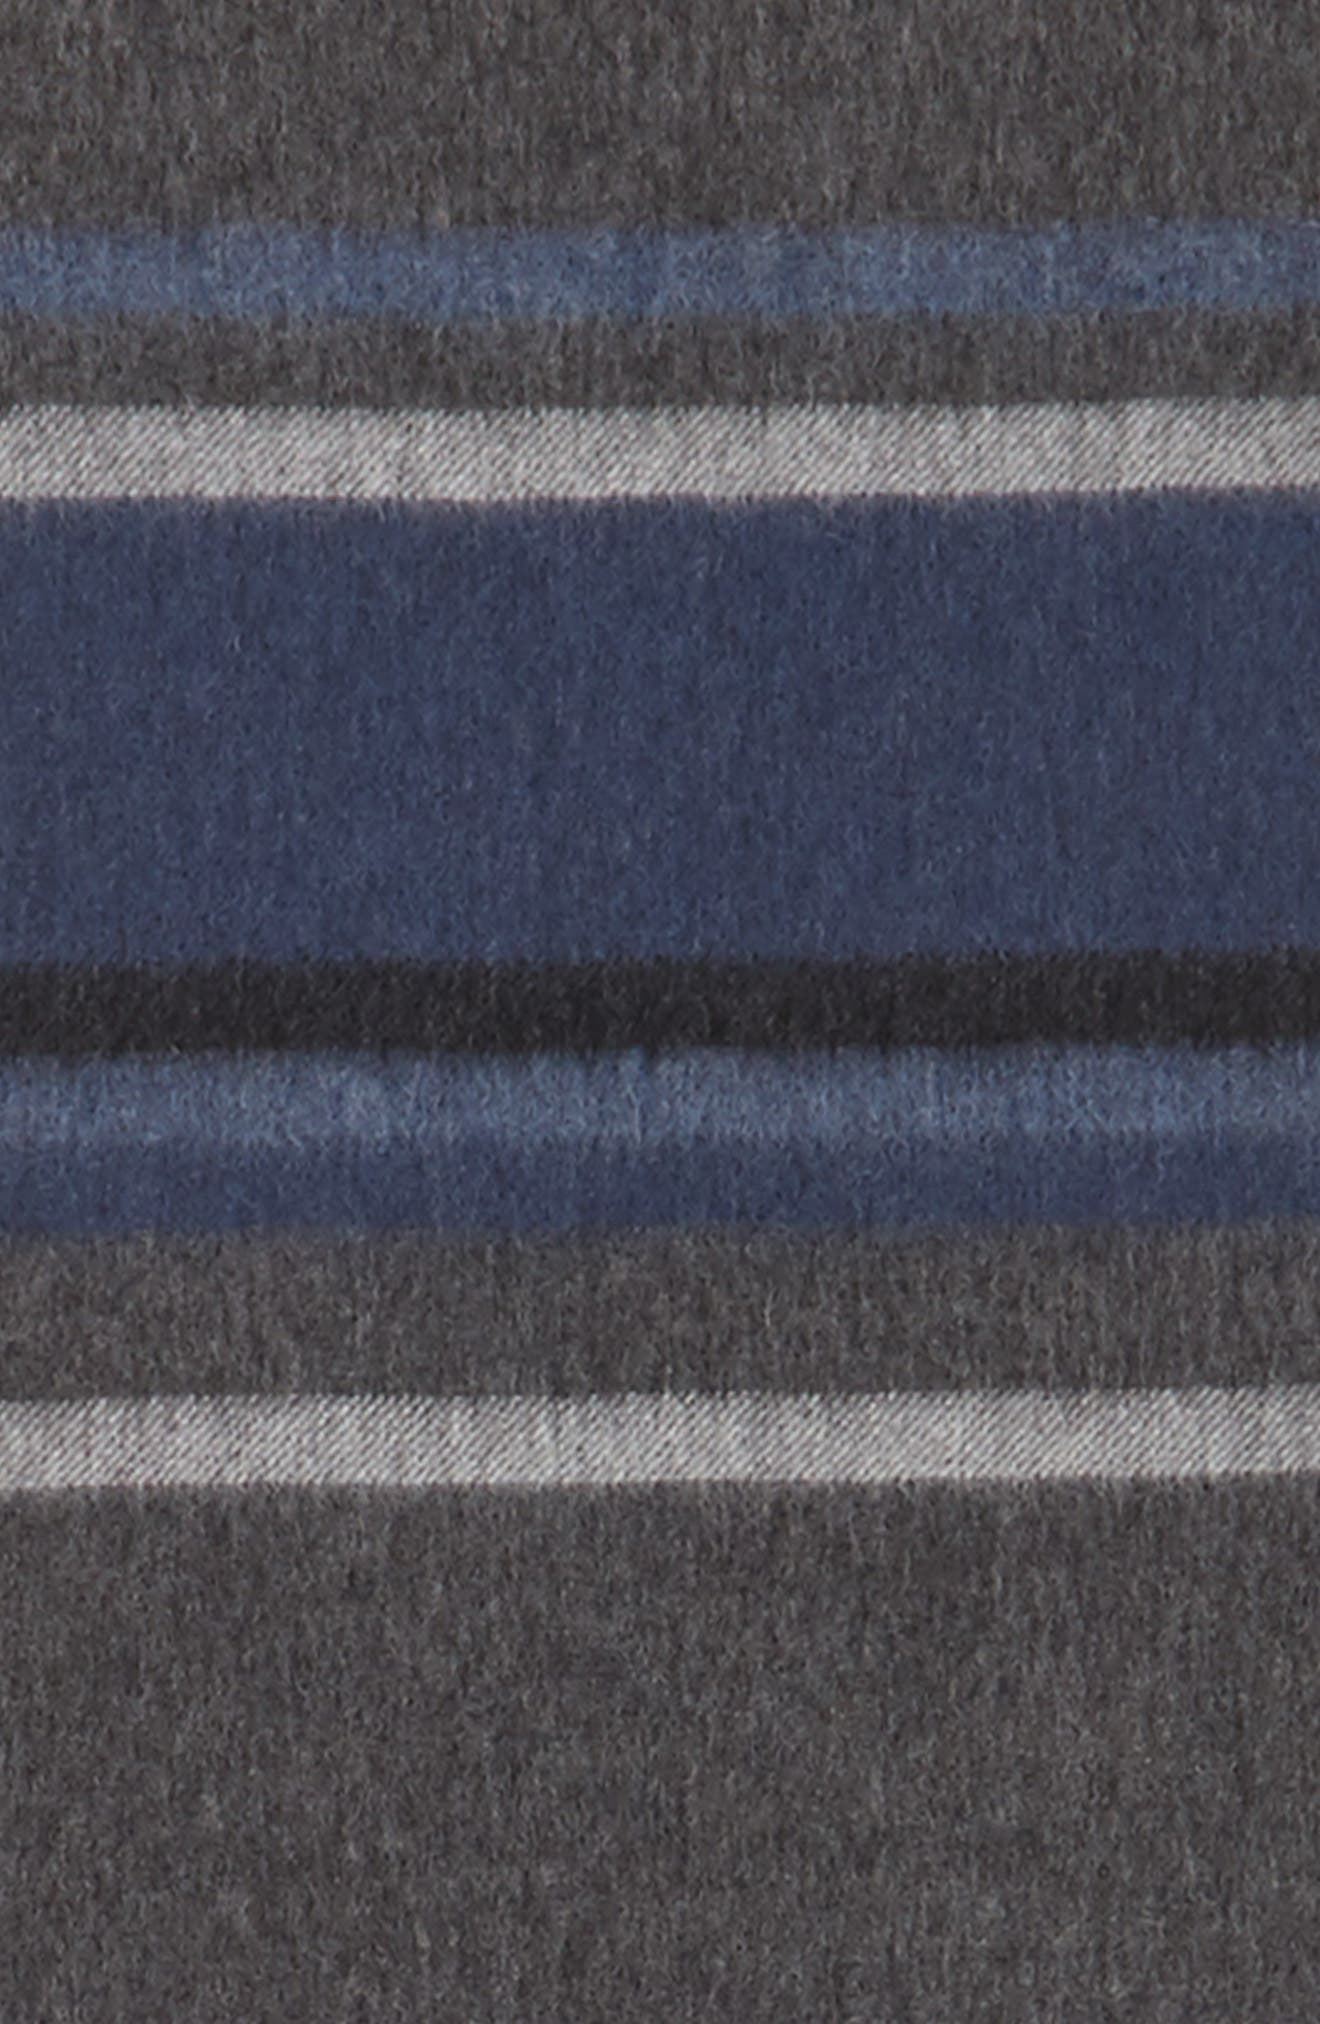 Multistripe Lambswool Scarf,                             Alternate thumbnail 7, color,